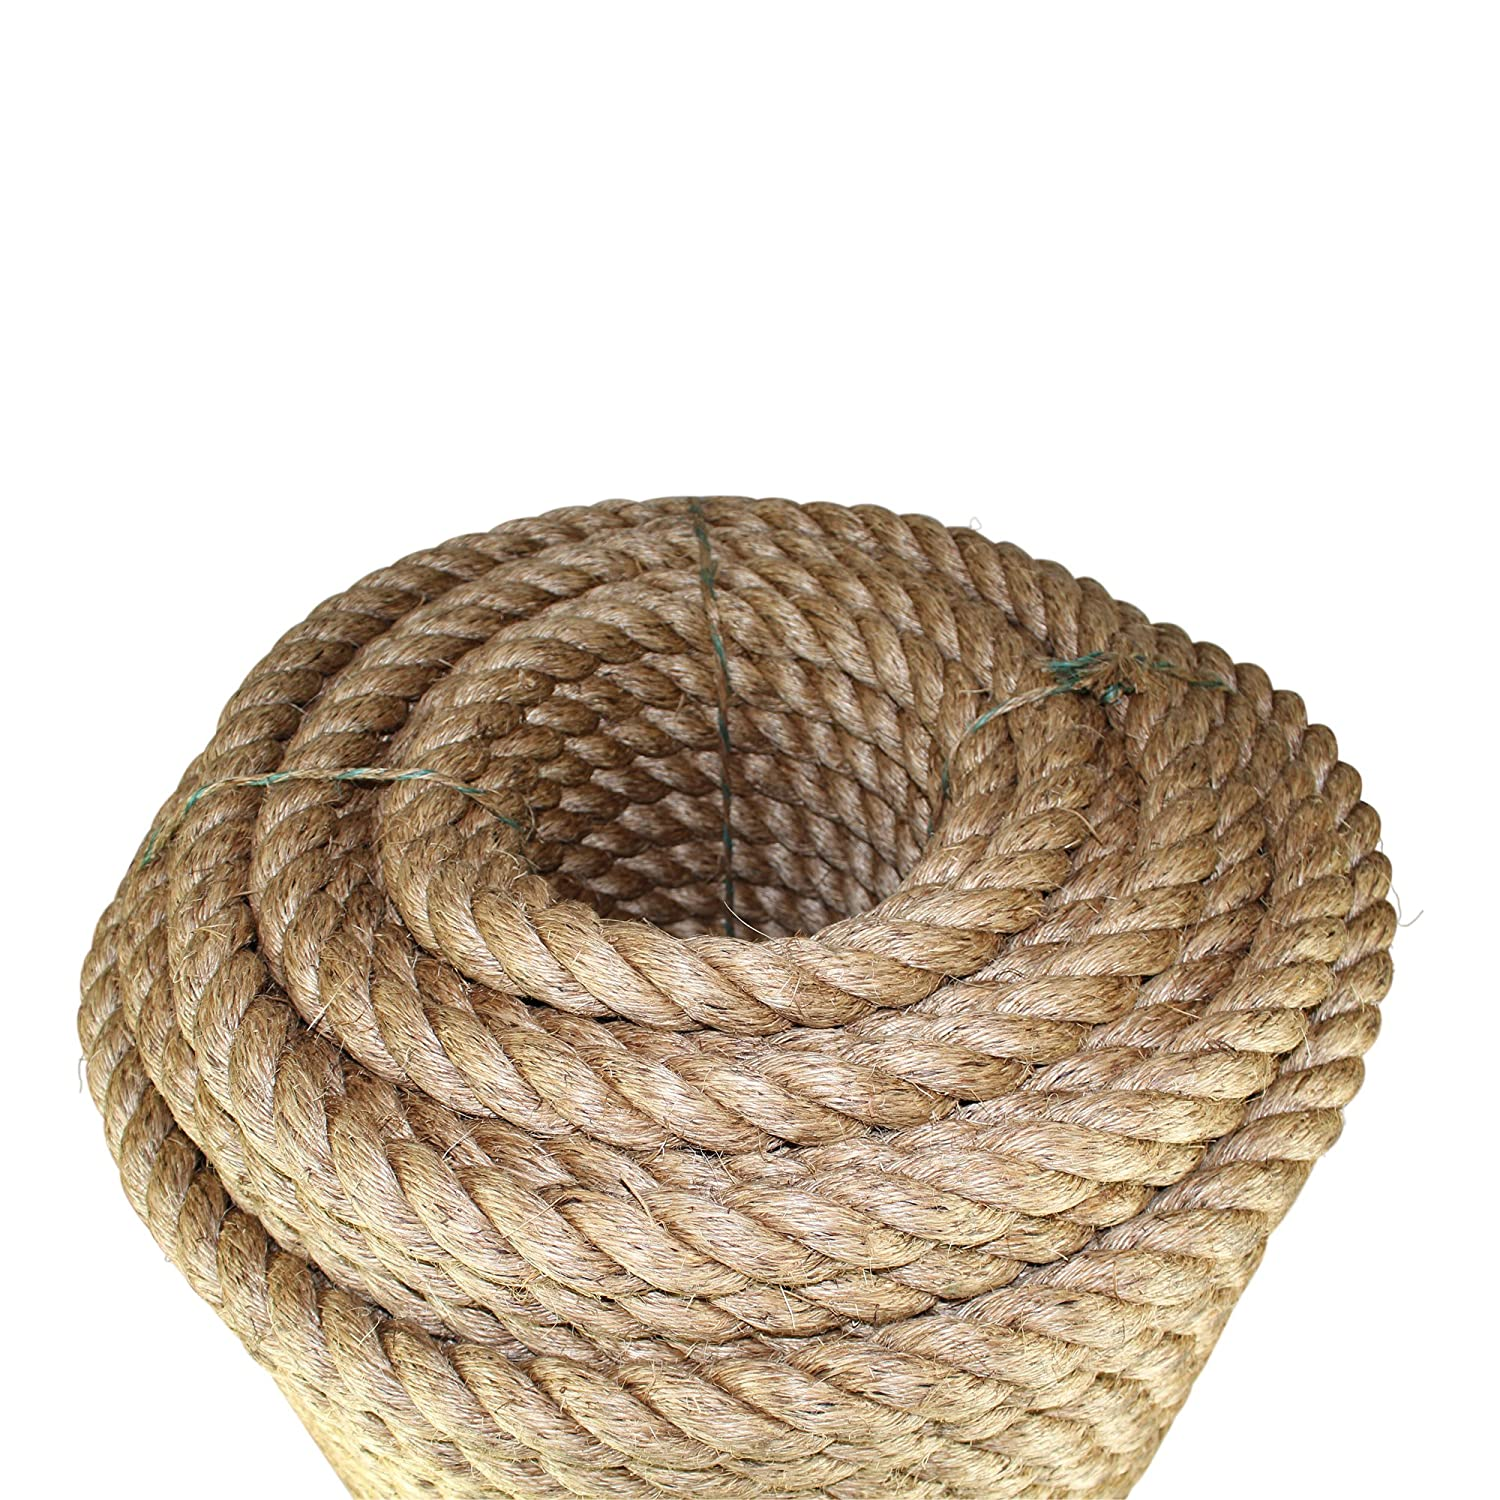 Thick Heavy Duty Rustic Outdoor Cordage for Craft Decorative Landscaping Twisted Manila Rope Hemp Rope - SGT KNOTS Tree Hanging Swing Climbing Tan Brown Natural Rope 1//4 in x 100 ft Dock